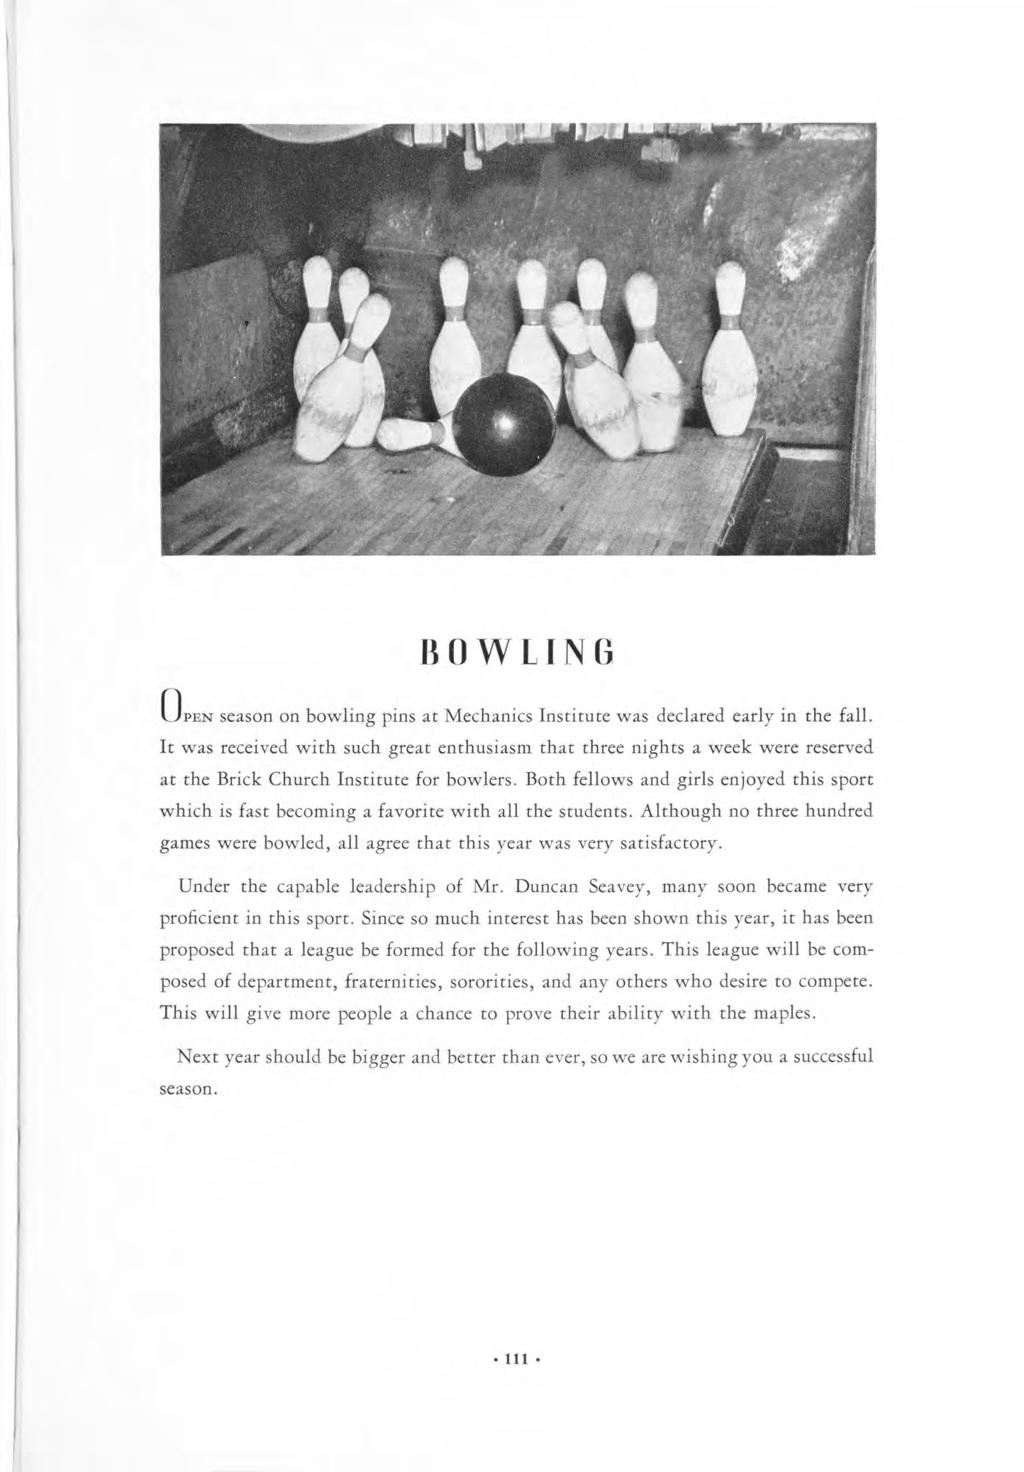 BOWLING OPEN season on bowling pins at Mechanics Institute was declared early It was received with such great enthusiasm that three nights in the fall.